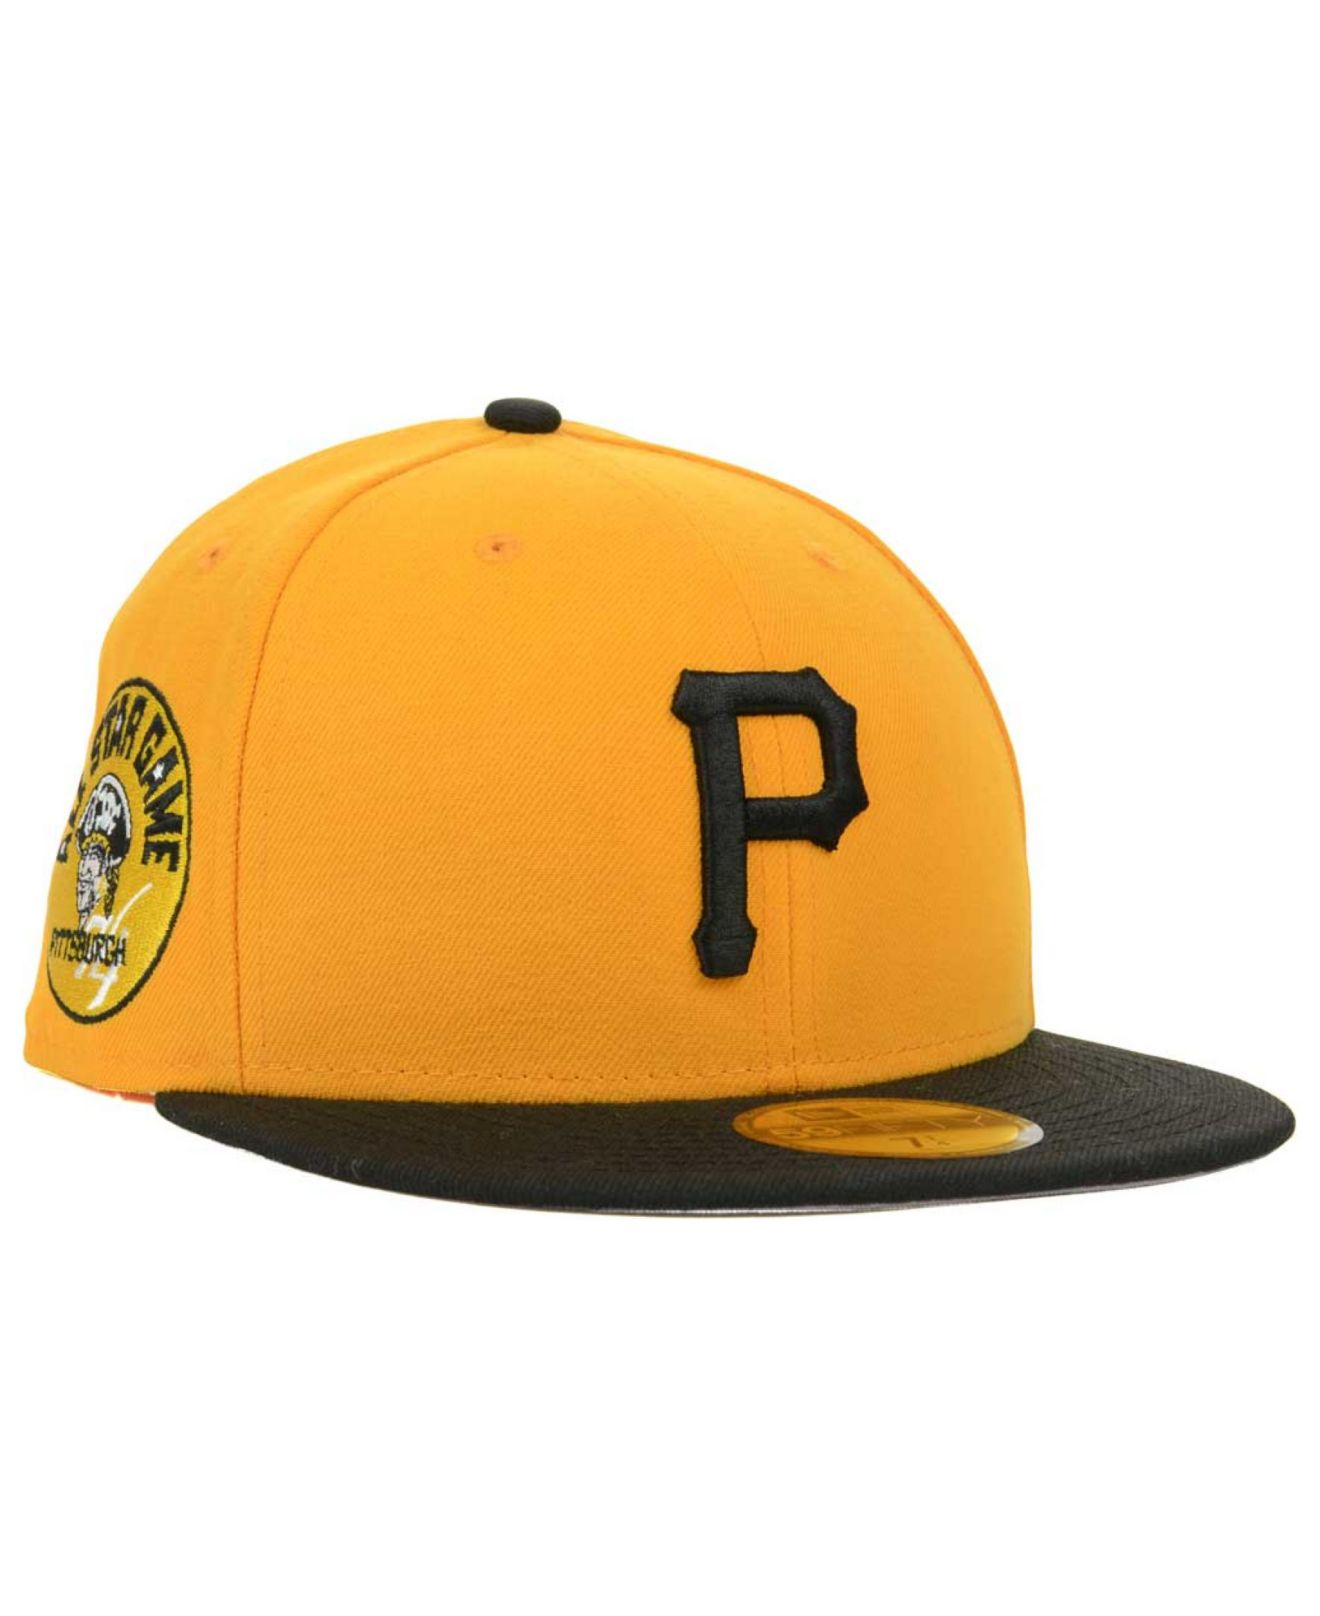 timeless design cf6e9 9ee4f ... promo code mlb 2014 all star game 59fifty cap scarlet lyst ktz  pittsburgh pirates allstar patch